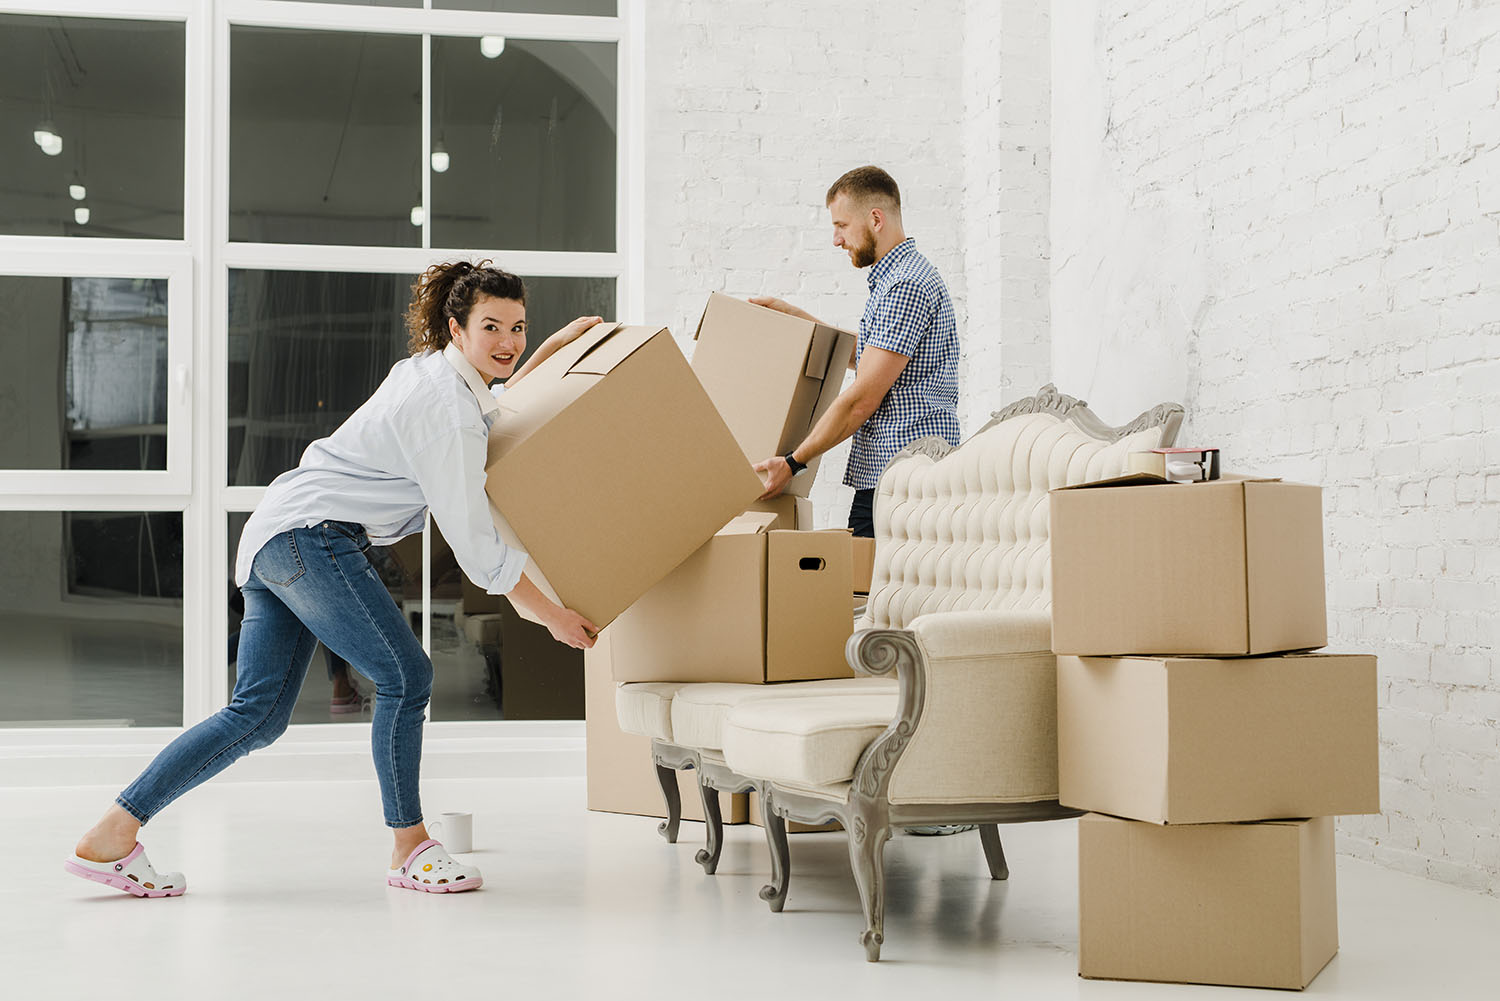 Choosing Moving Companies: 5 Helpful Tips